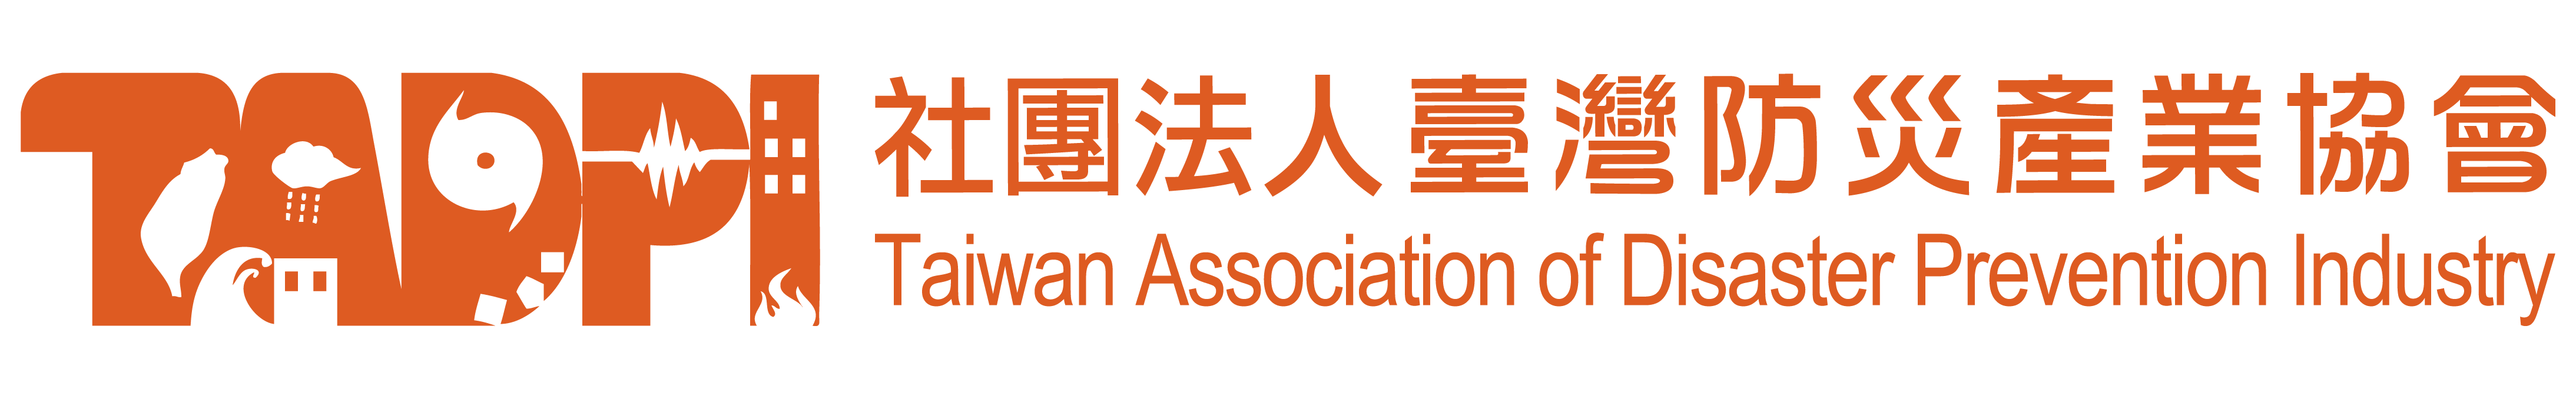 Taiwan Association of Disaster Prevention Industry